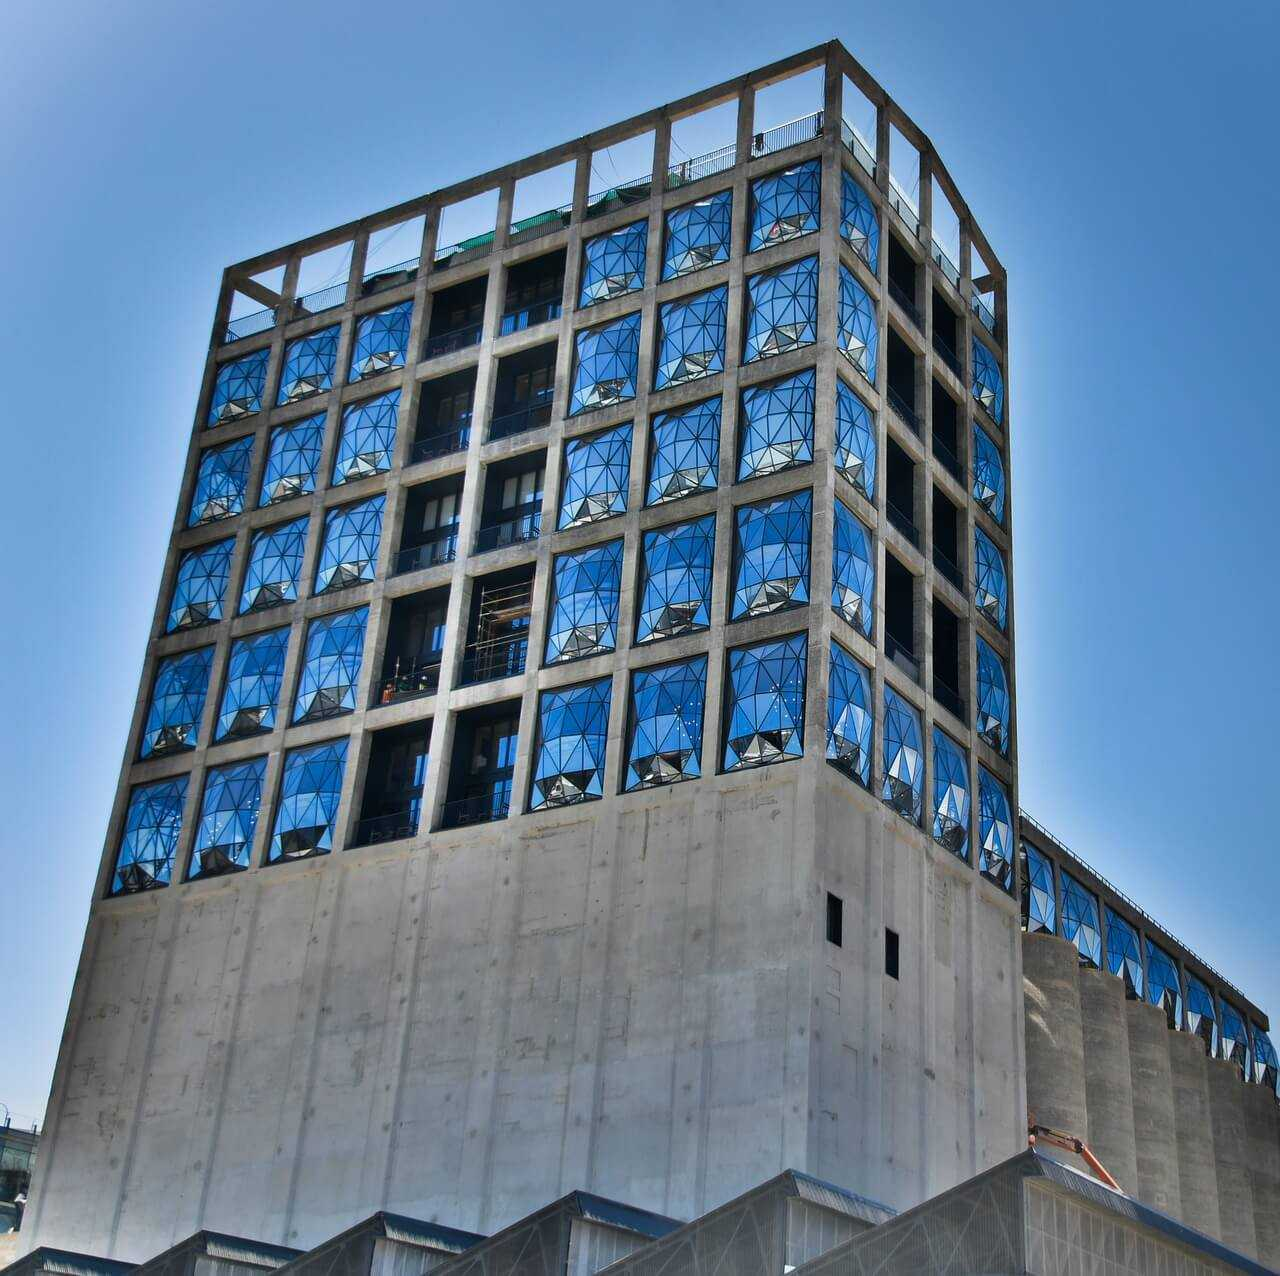 Zeitz Contemporary Art Museum - Best Things to Do in Cape Town